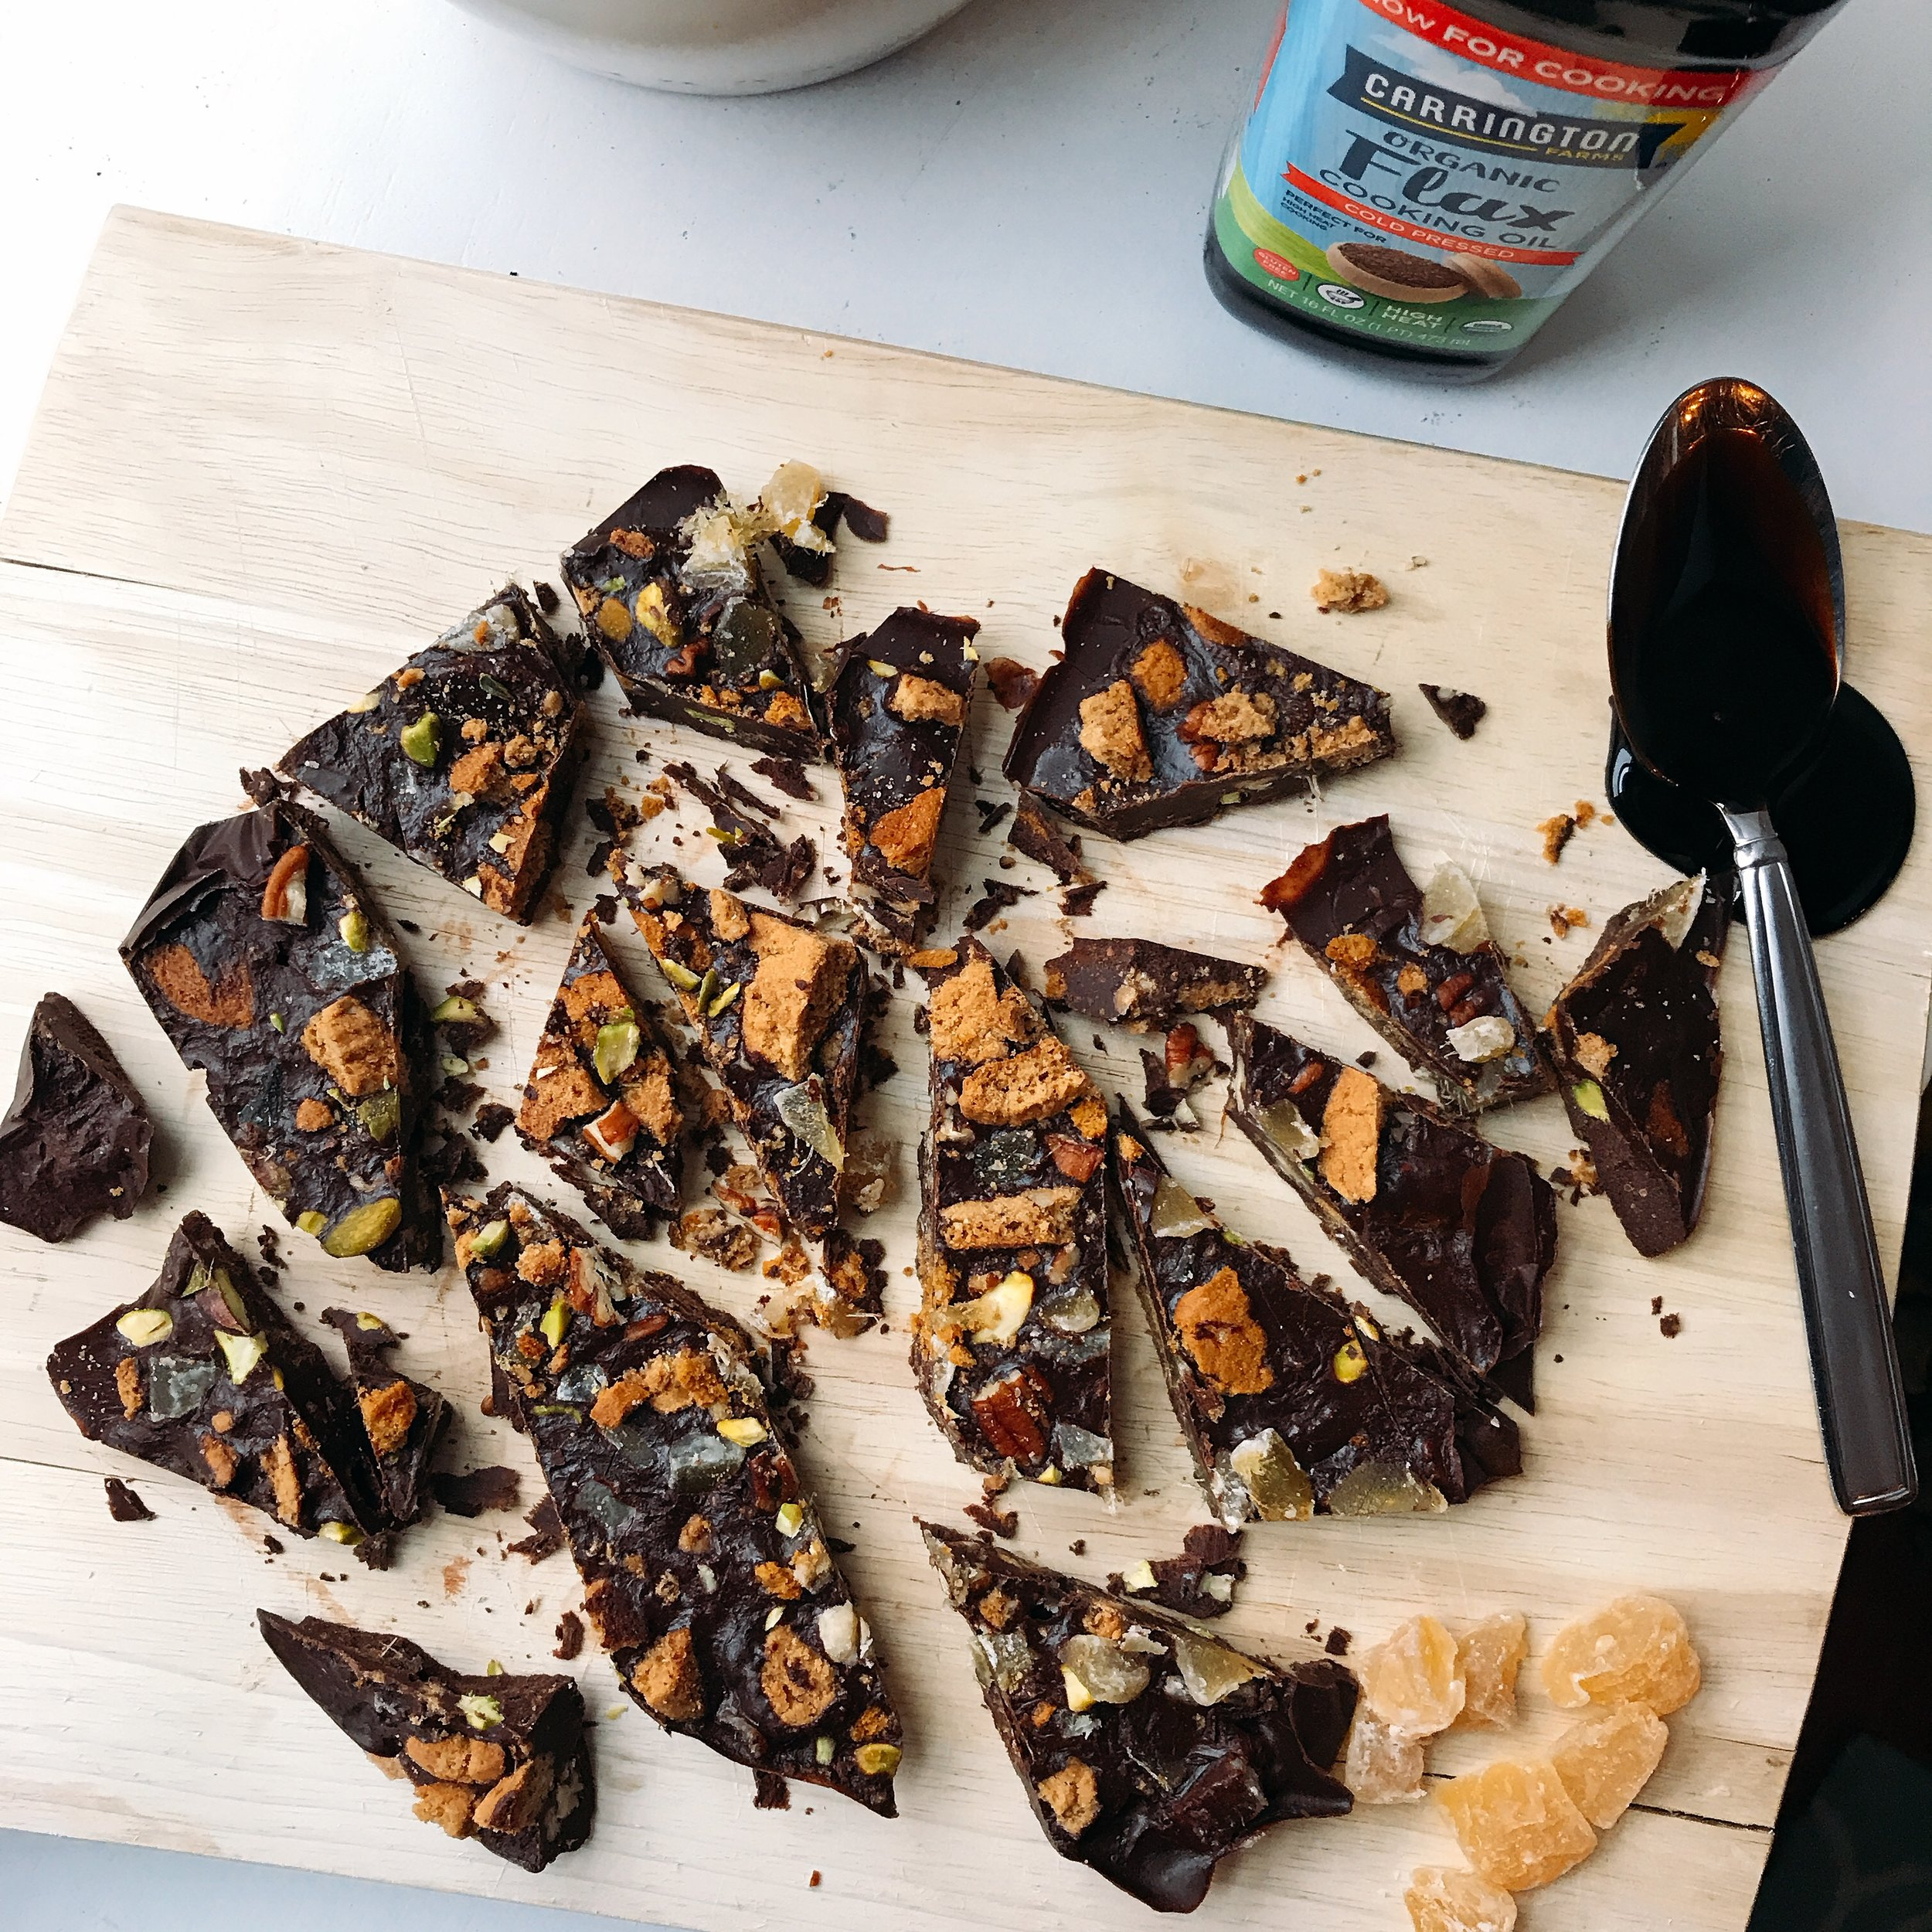 The perfect holiday bark that is simple to make, crunchy, chocolate-y, and full of holiday flavors; ginger, cinnamon, molasses, and vanilla! It is completely dairy free!